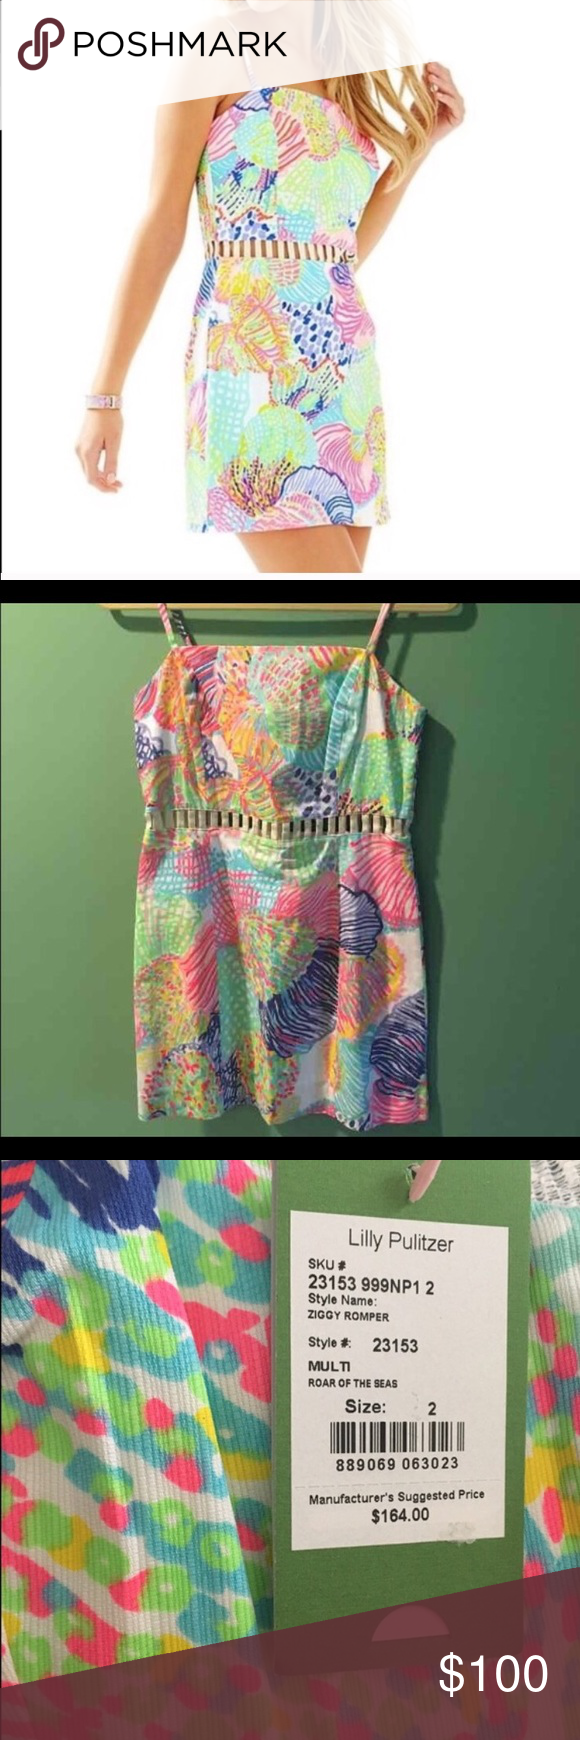 NWT Lilly Pulitzer Ziggy Romper NWT Lilly Pulitzer Ziggy Romper! Perfect for spring and summer!! Size 2 Lilly Pulitzer Dresses